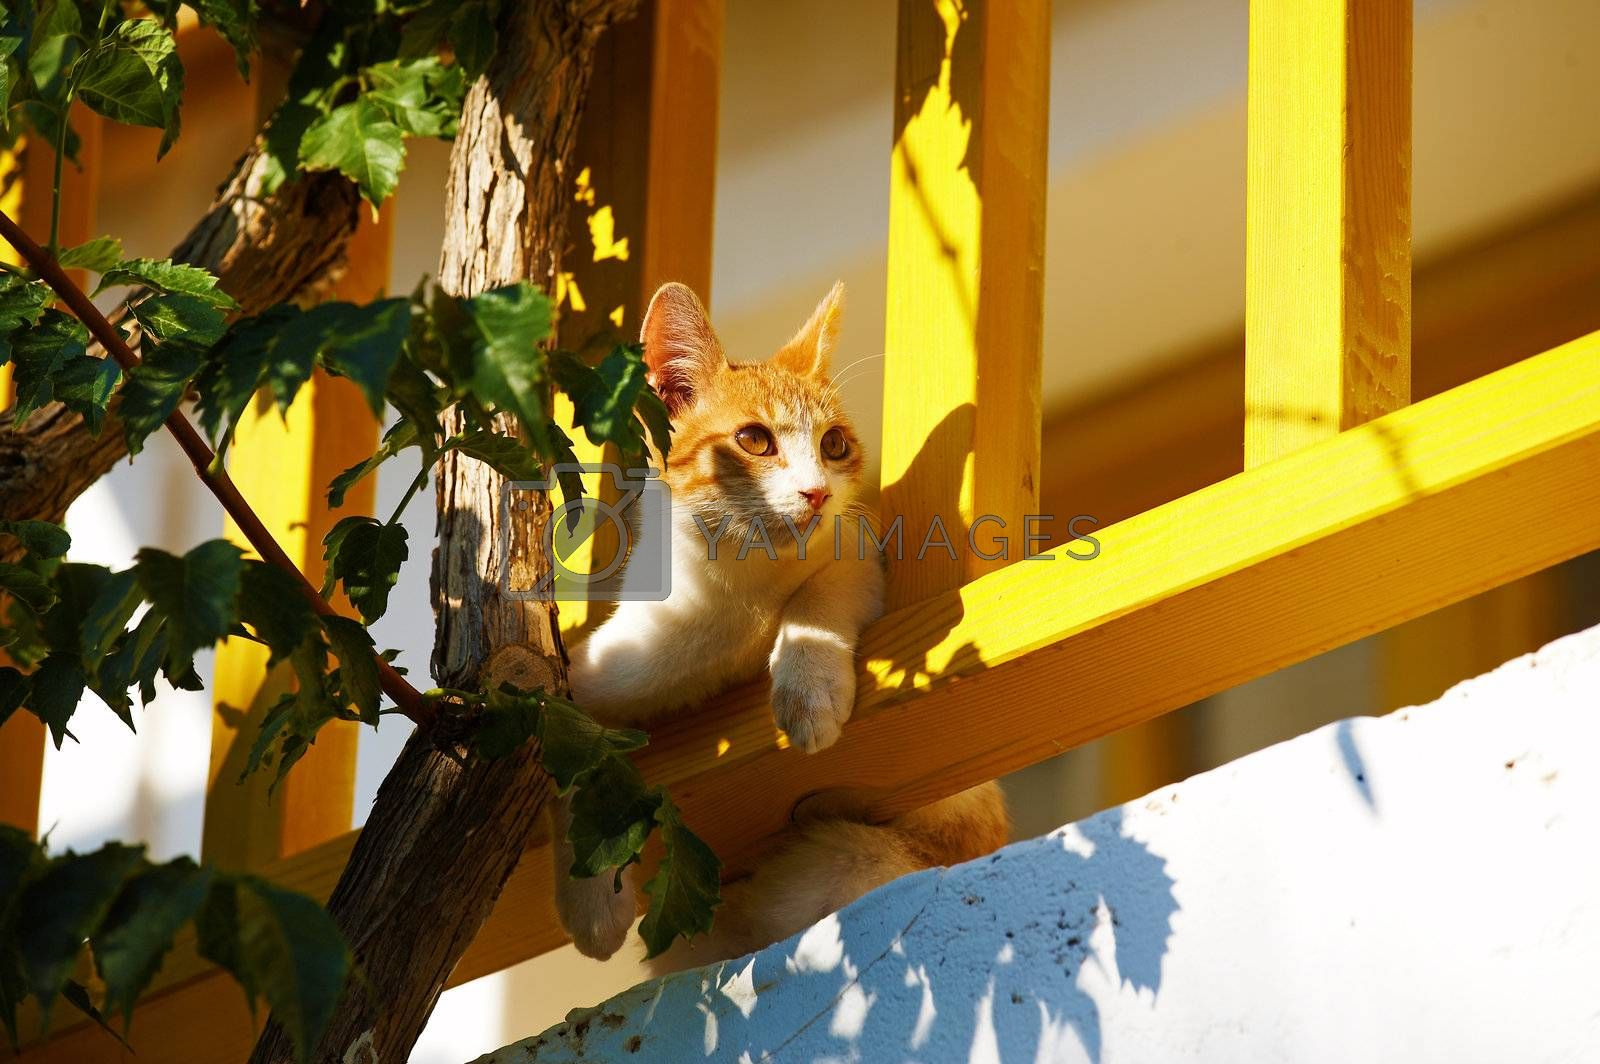 The cat lies on a balcony and looks aside